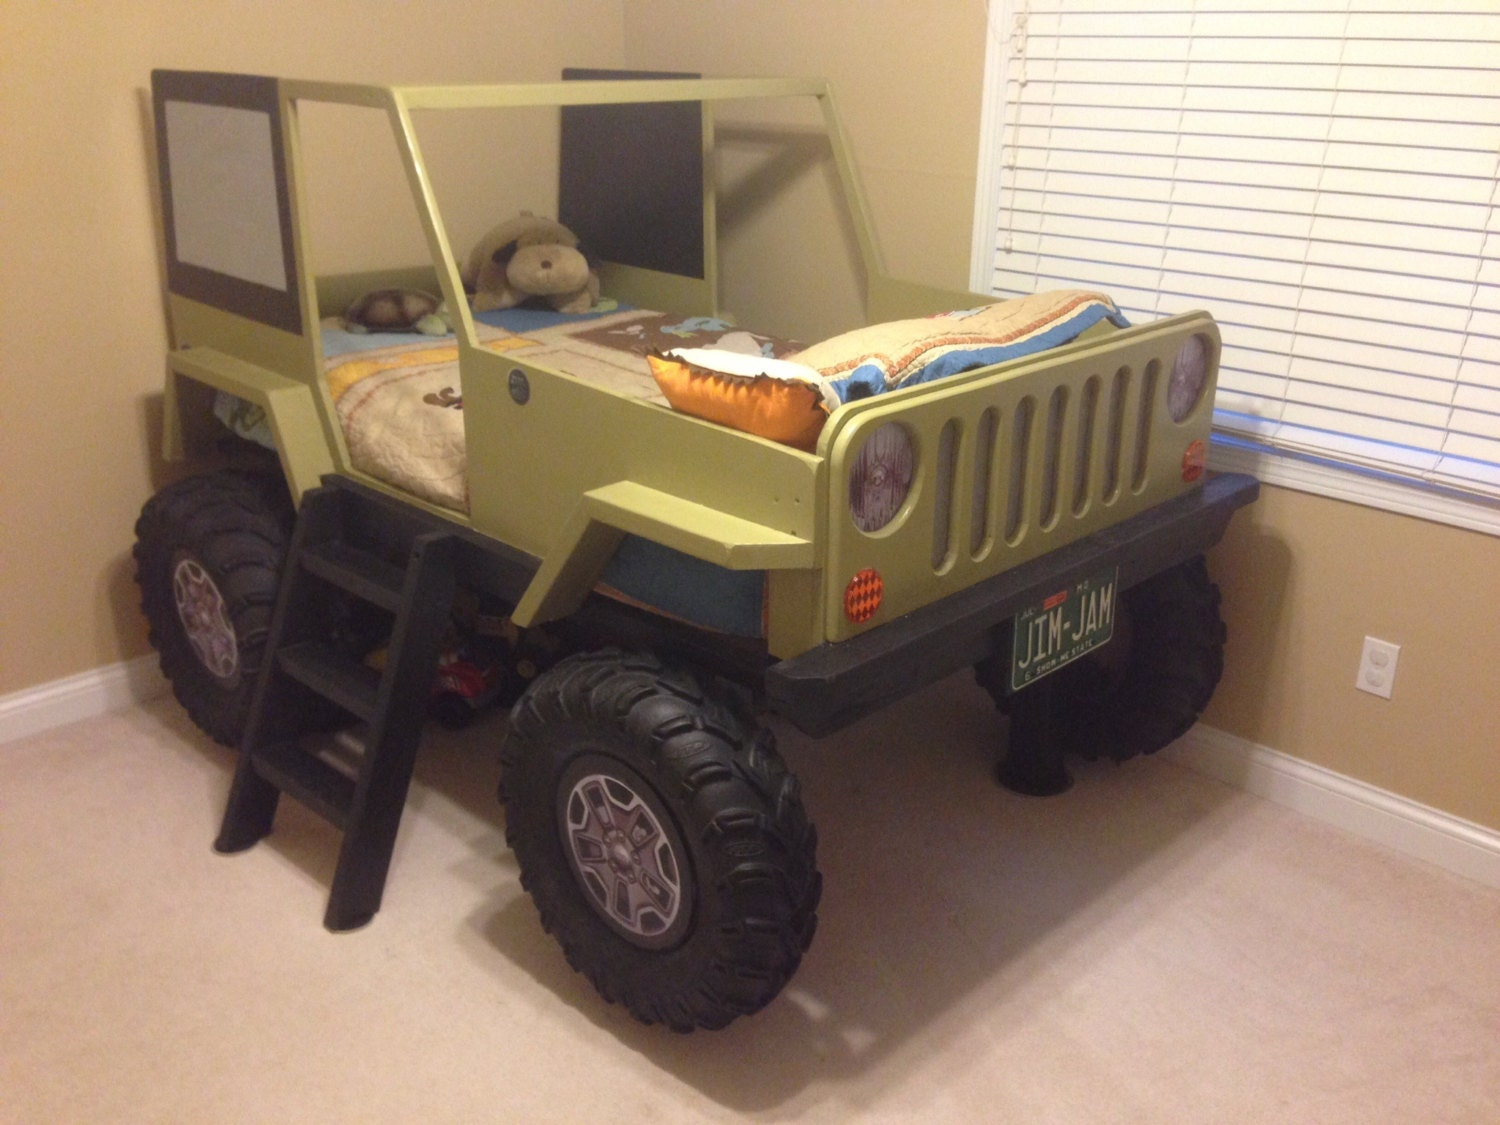 Wooden car beds for boys -  Zoom